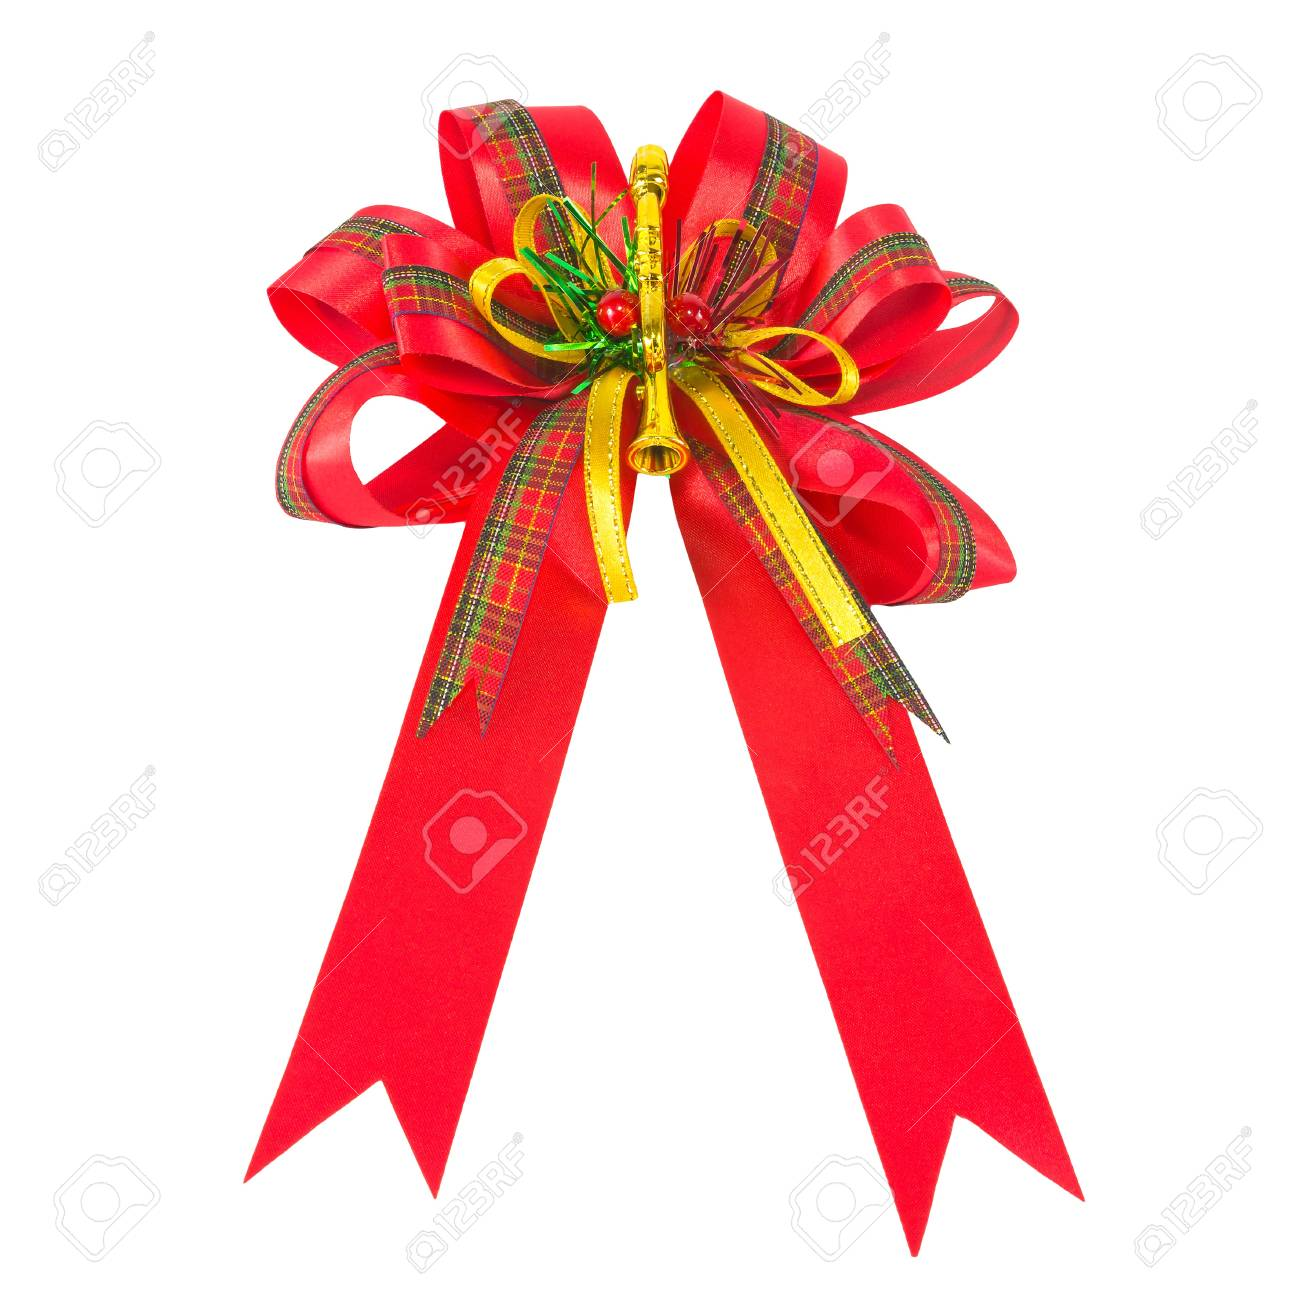 big red gift bow